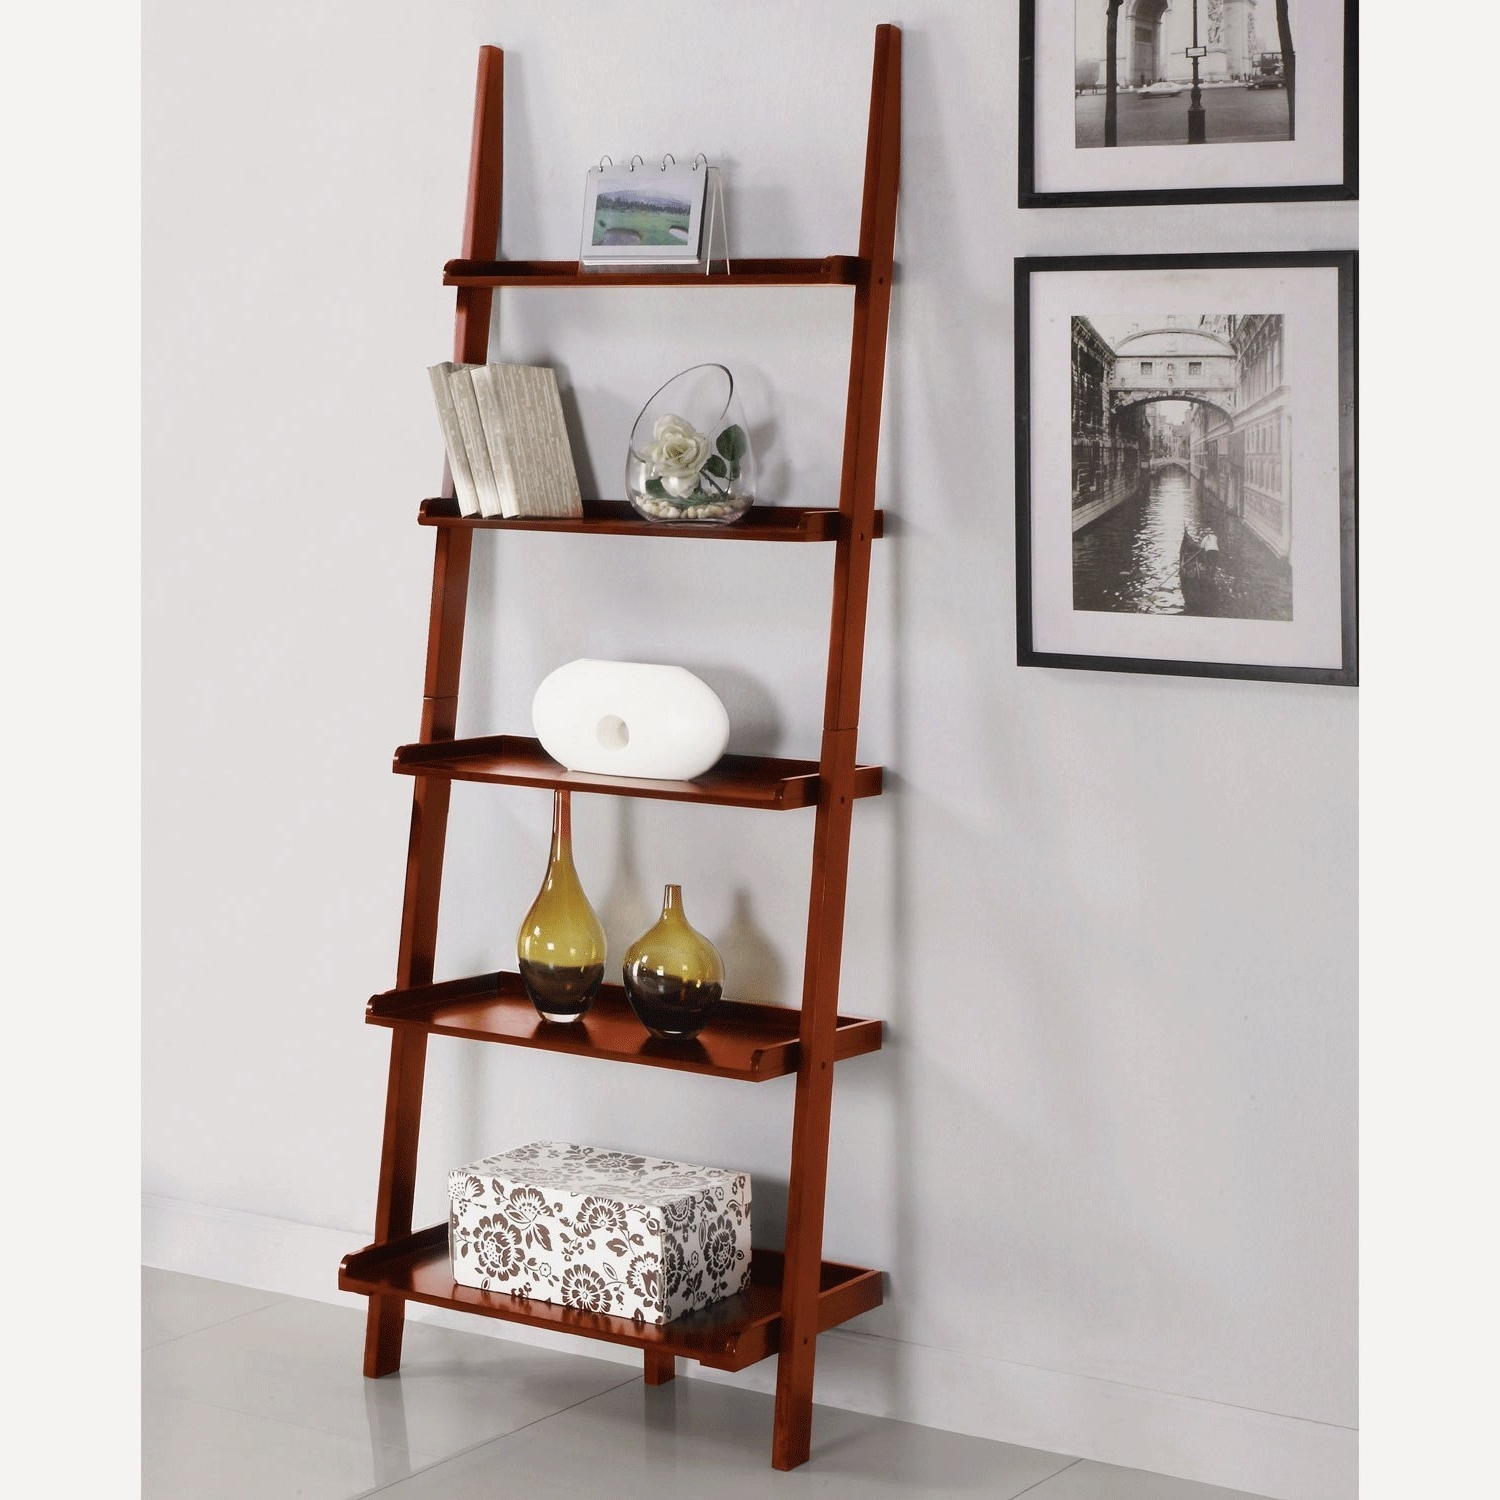 Leaning Bookcases Intended For Popular Top 22 Ladder Bookcase And Bookshelf Collection For Your Interiors (View 10 of 15)